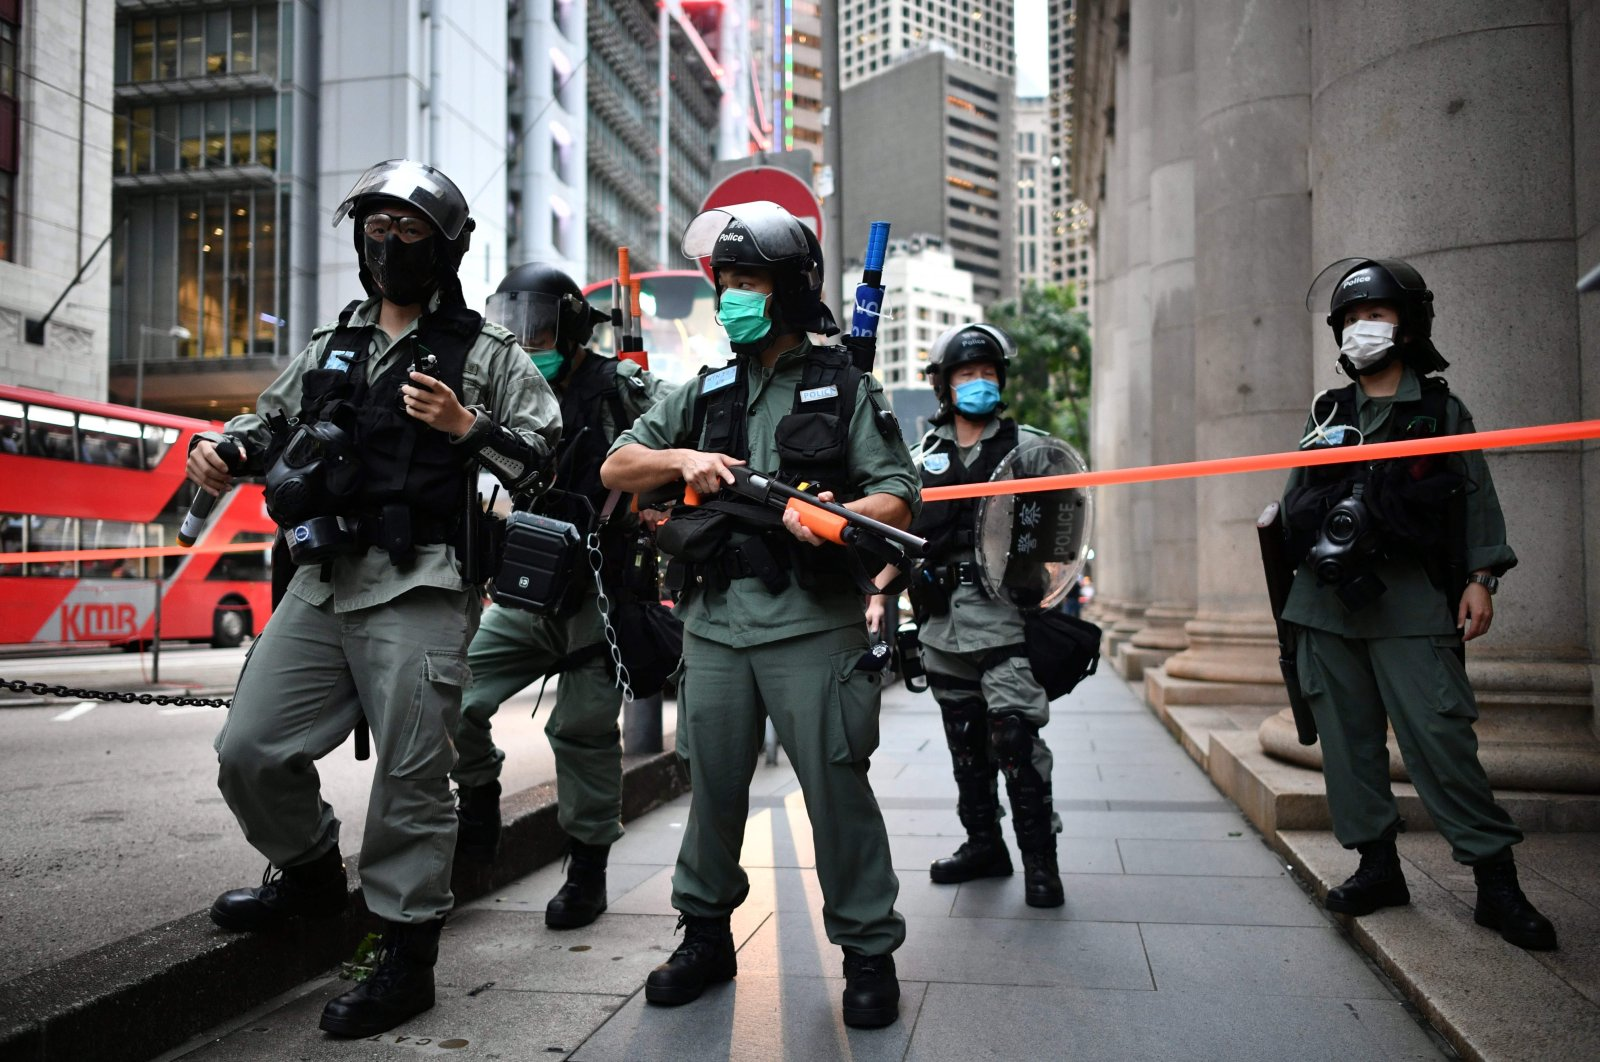 In this file photo riot police officers stand guard ahead of a pro-democracy march in the Central district of Hong Kong on June 9, 2020, as the city marks the one-year anniversary since pro-democracy protests erupted following opposition to a bill allowing extraditions to mainland China. (AFP Photo)